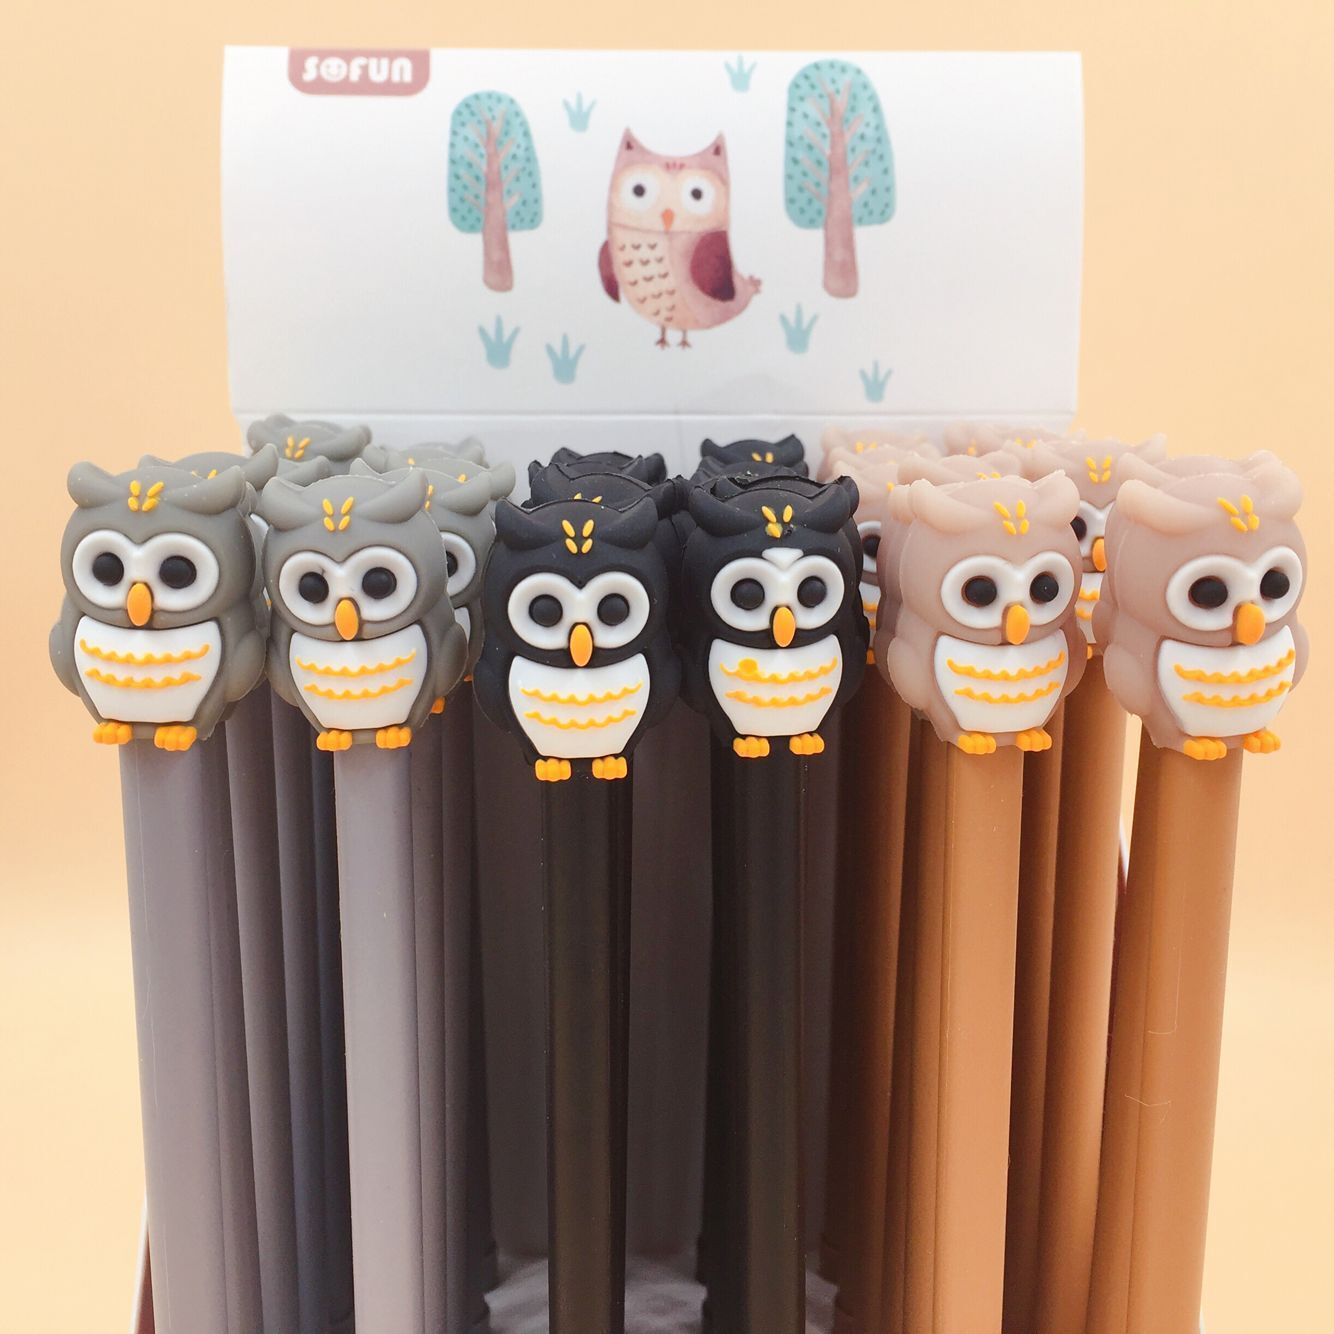 36 Pcs/lot 0.5 Mm Owl Collection Signature Gel Pen Escolar Papelaria School Office Supply Promotional Gift36 Pcs/lot 0.5 Mm Owl Collection Signature Gel Pen Escolar Papelaria School Office Supply Promotional Gift